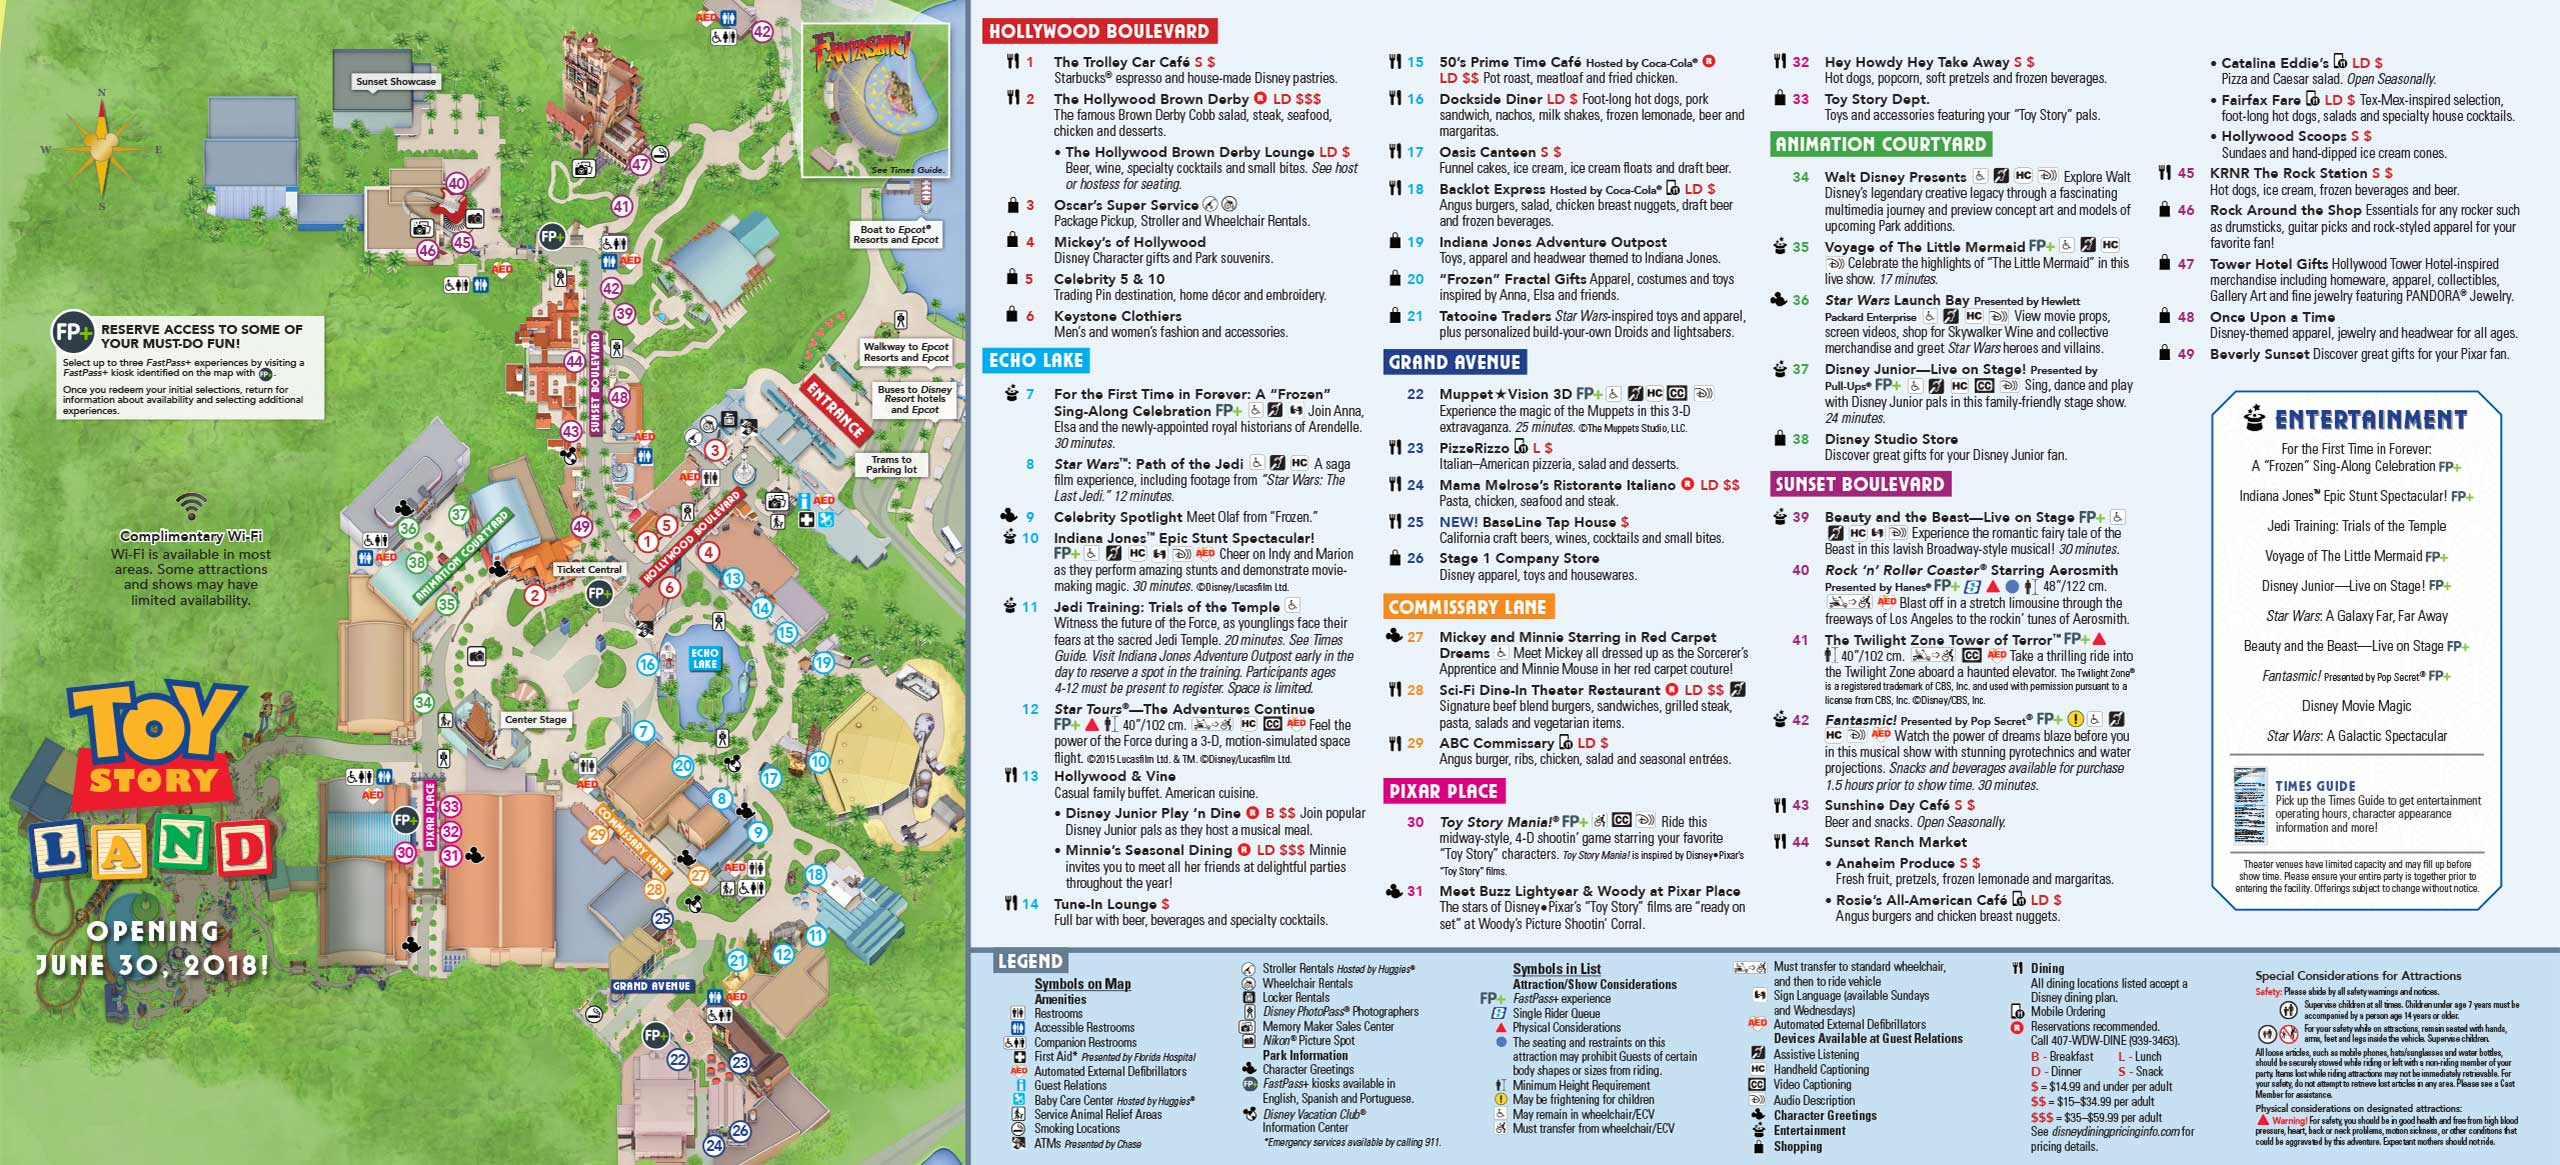 Studios Map with pre-opening Toy Story Land - Photo 1 of 2